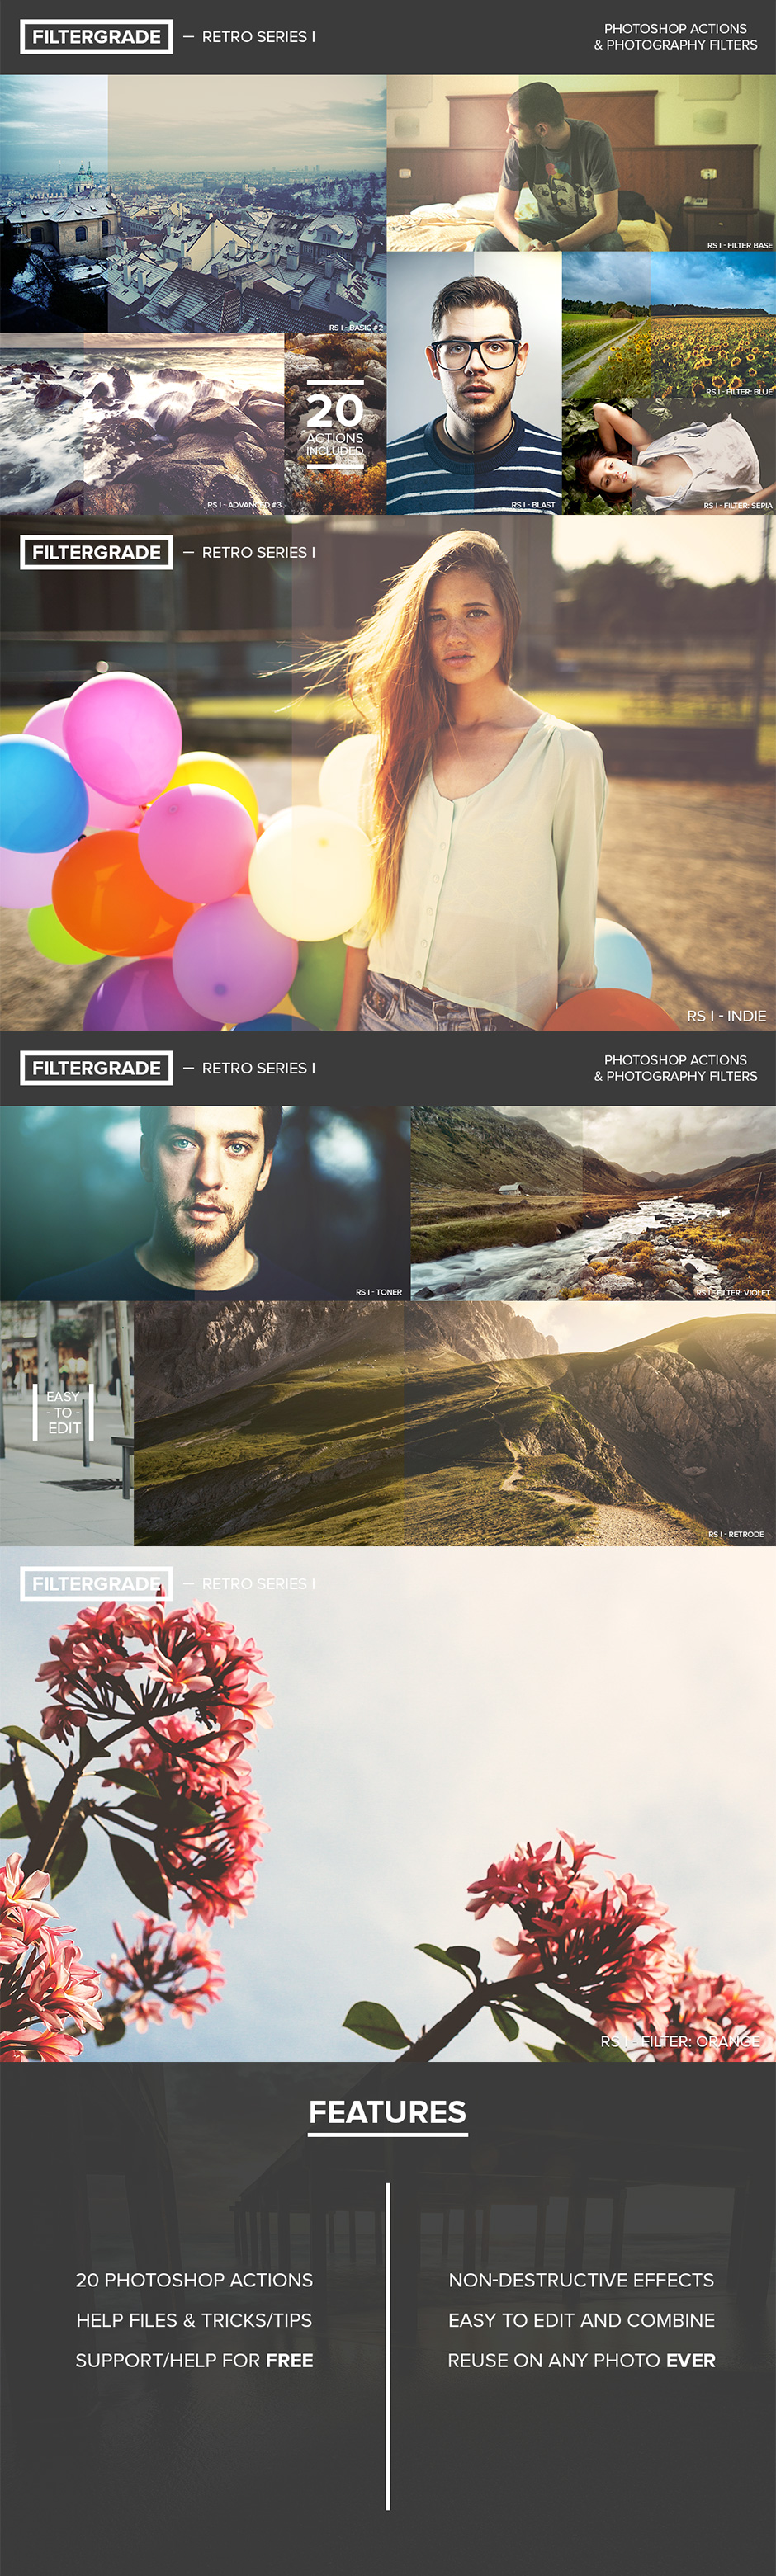 The Massive, End of Year Freebie Bundle